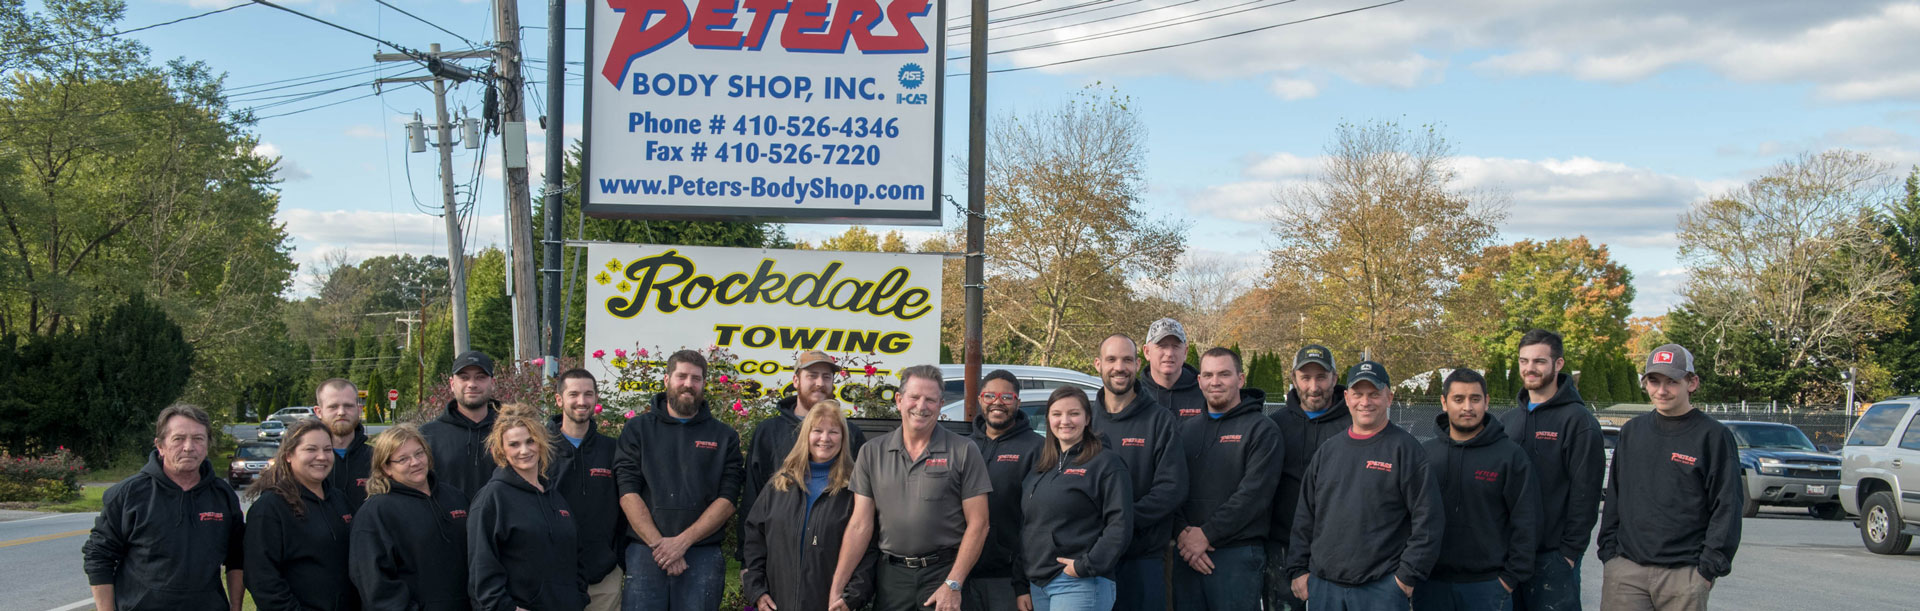 Services Peters Body Shop Collision Repair Auto Body